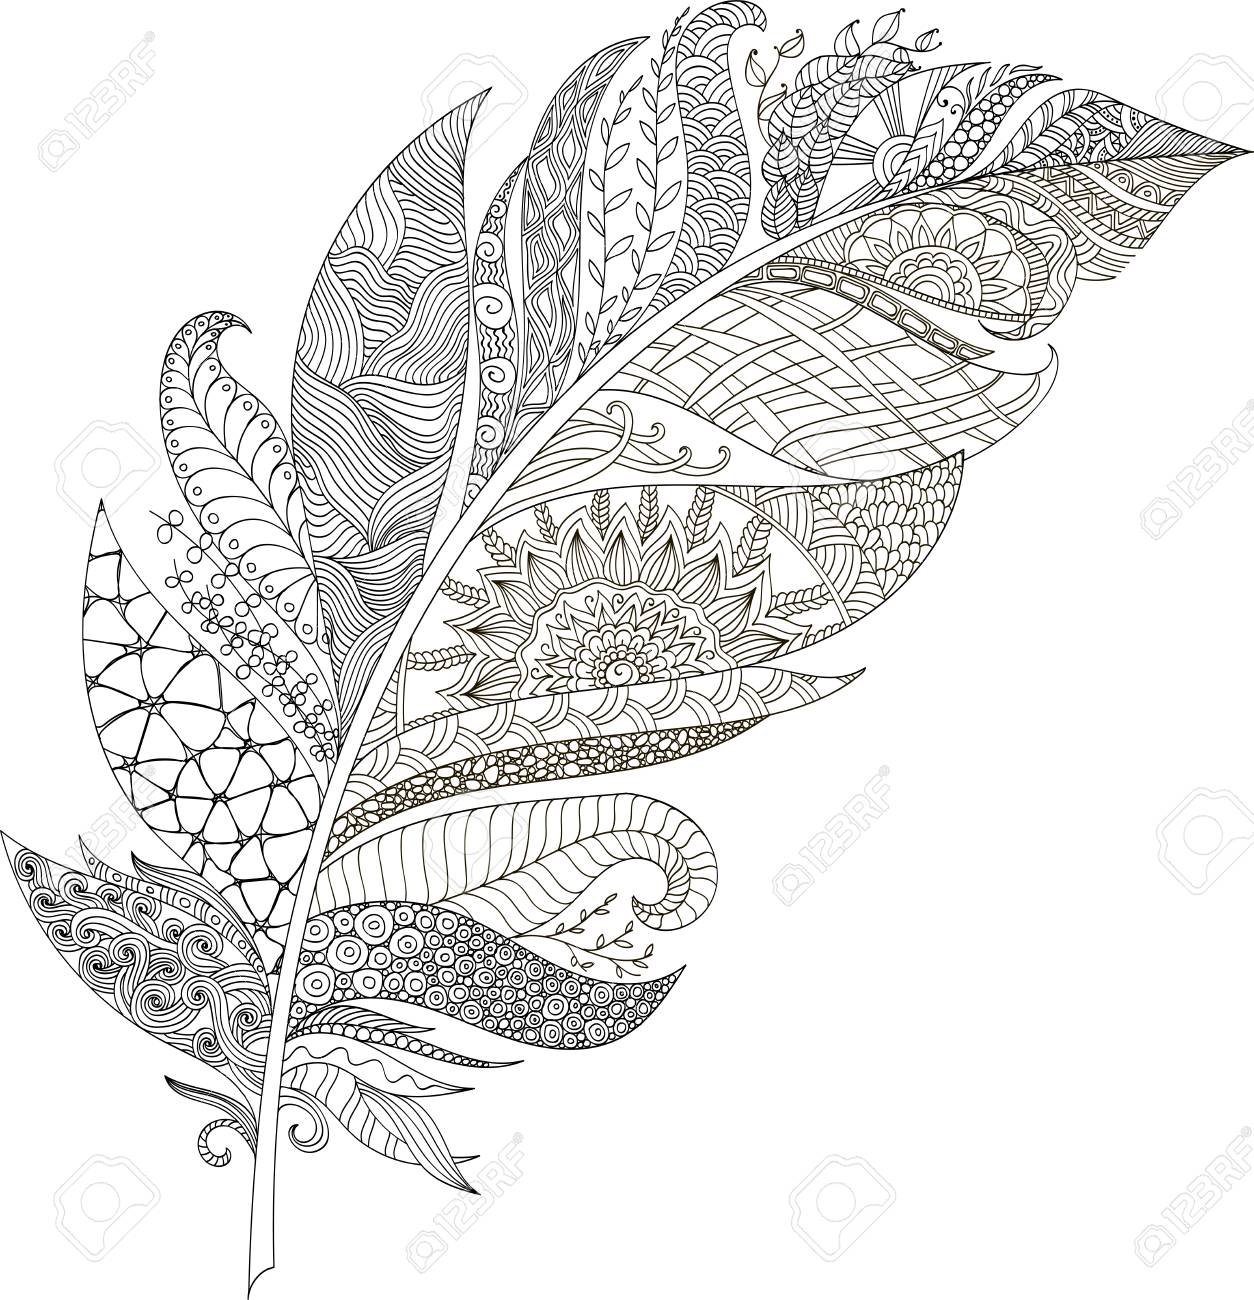 Drawing Feather Zentangle Style For Coloring Book, Tattoo, Shirt ...